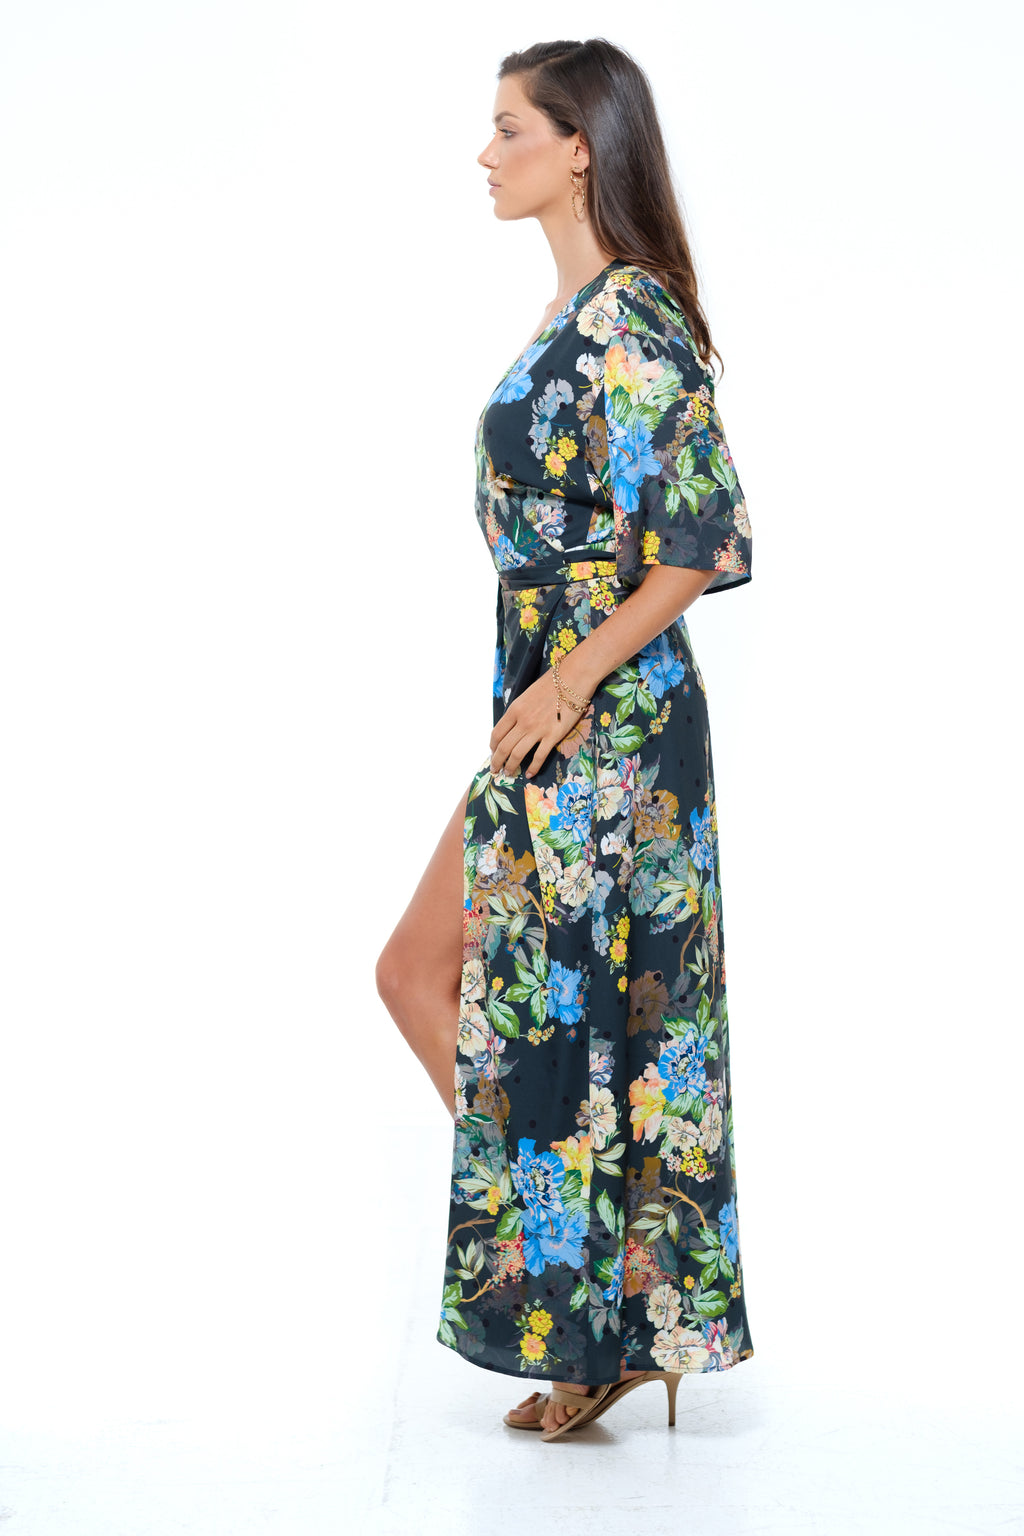 Sorrento Maxi Wrap Dress Black Multi